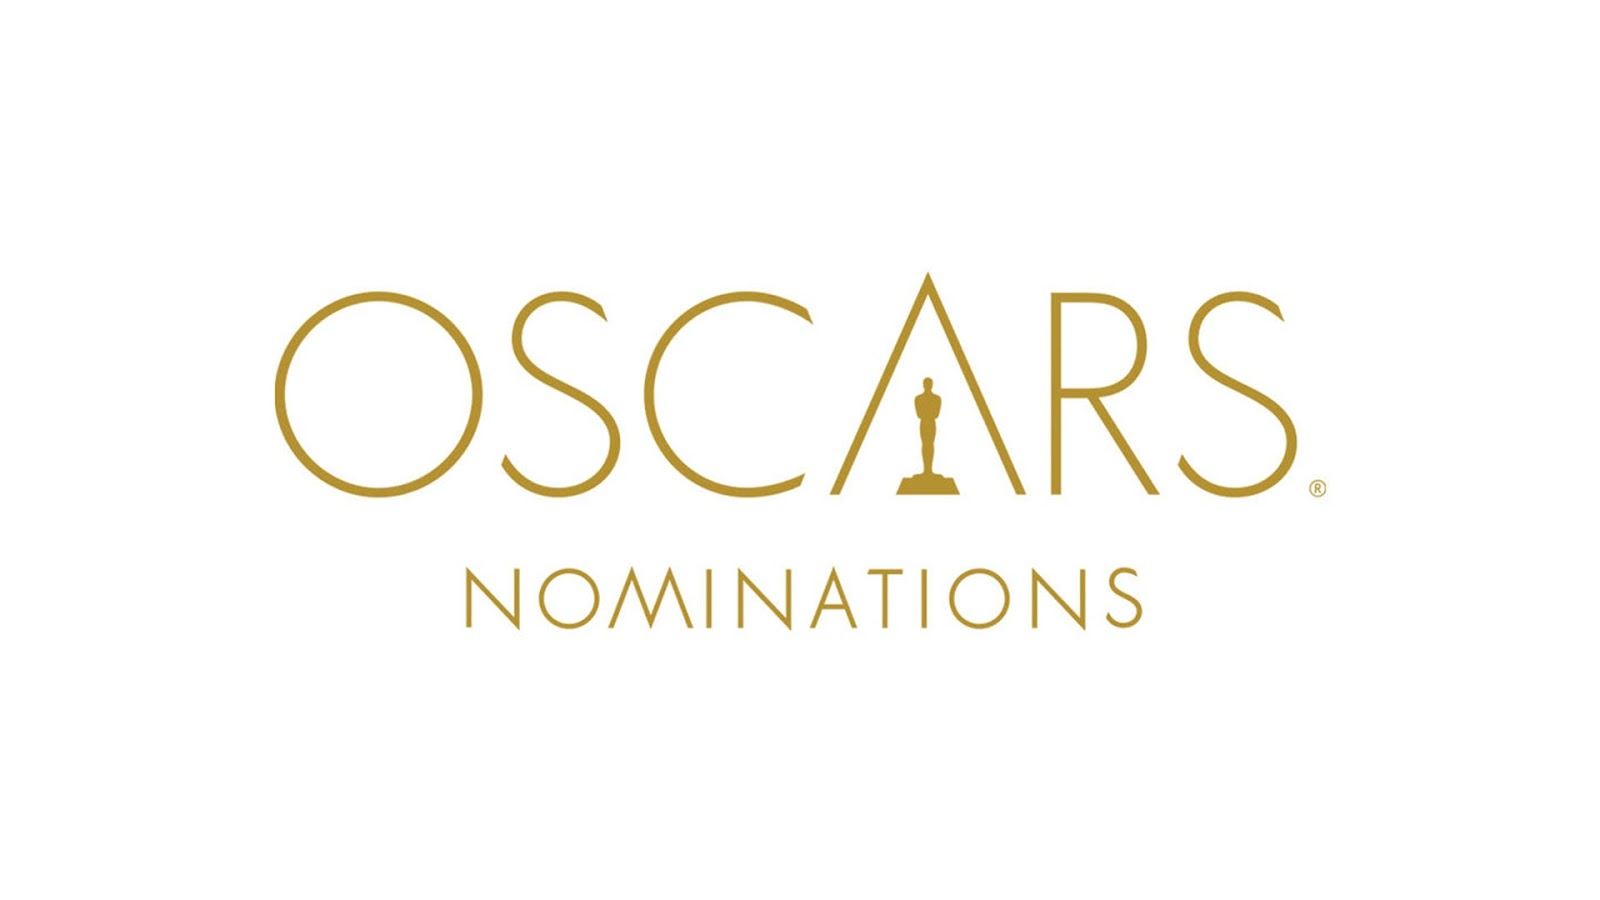 Full winners list of Oscars 2019 results Academy Awards 91st Annual